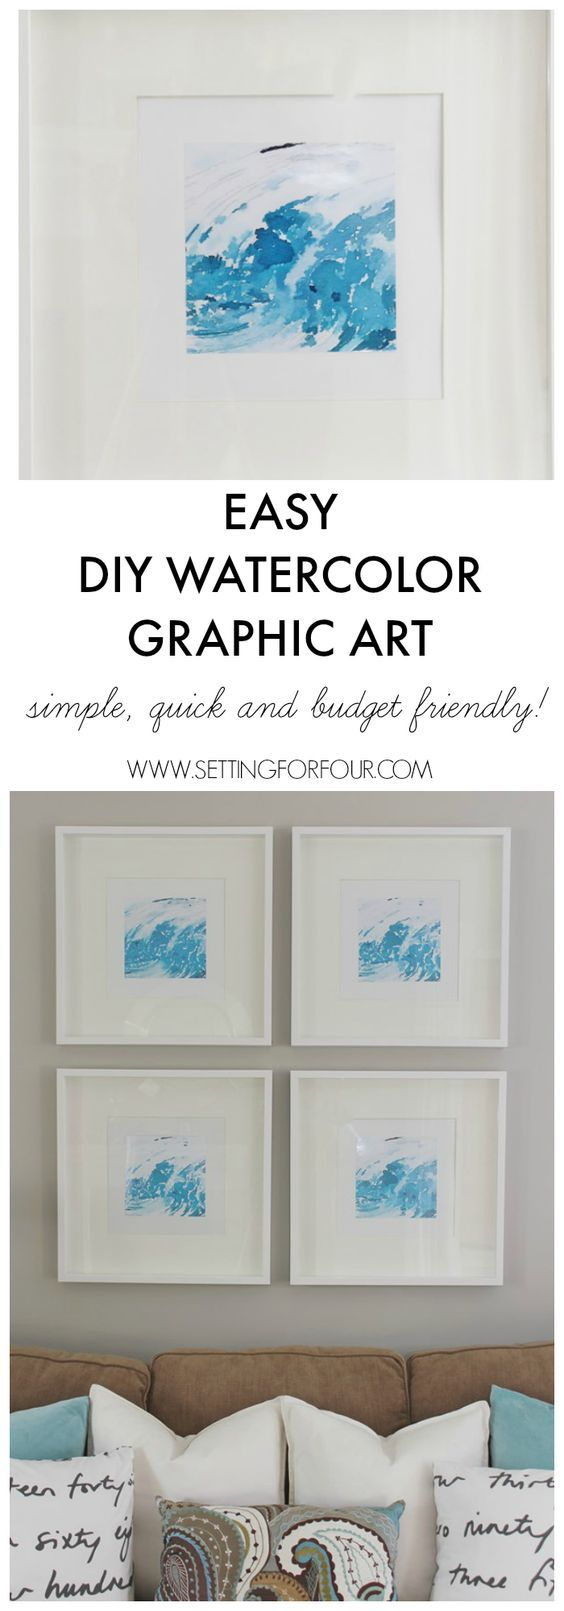 Easy diy watercolor abstract wall art diy pinterest graphic